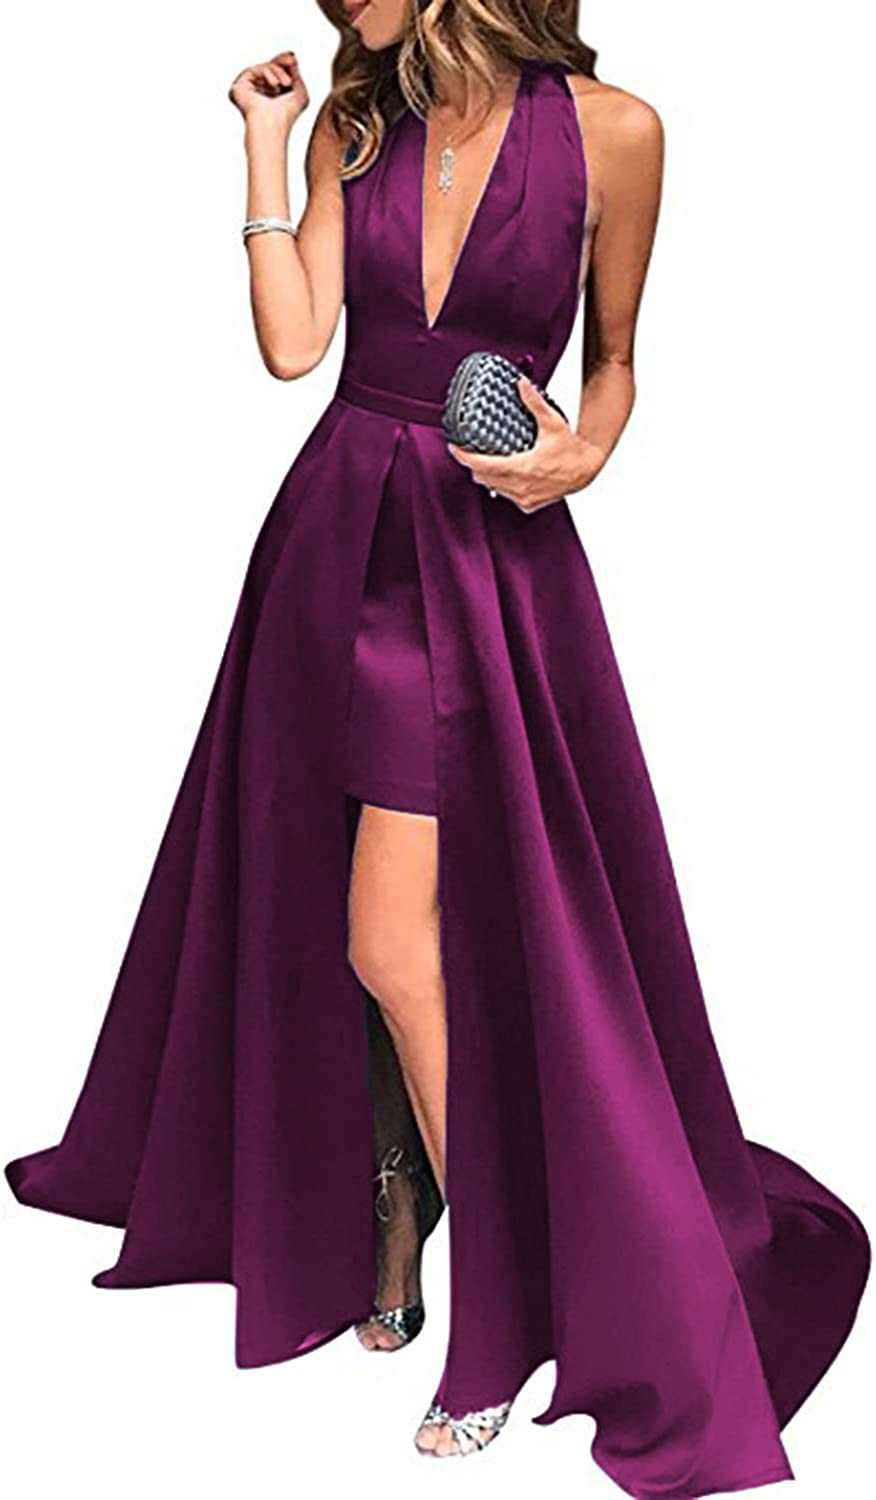 Beautydress Womens Pluging VNeck Formal Party Gown Sexy Backless Prom Dresses Slit